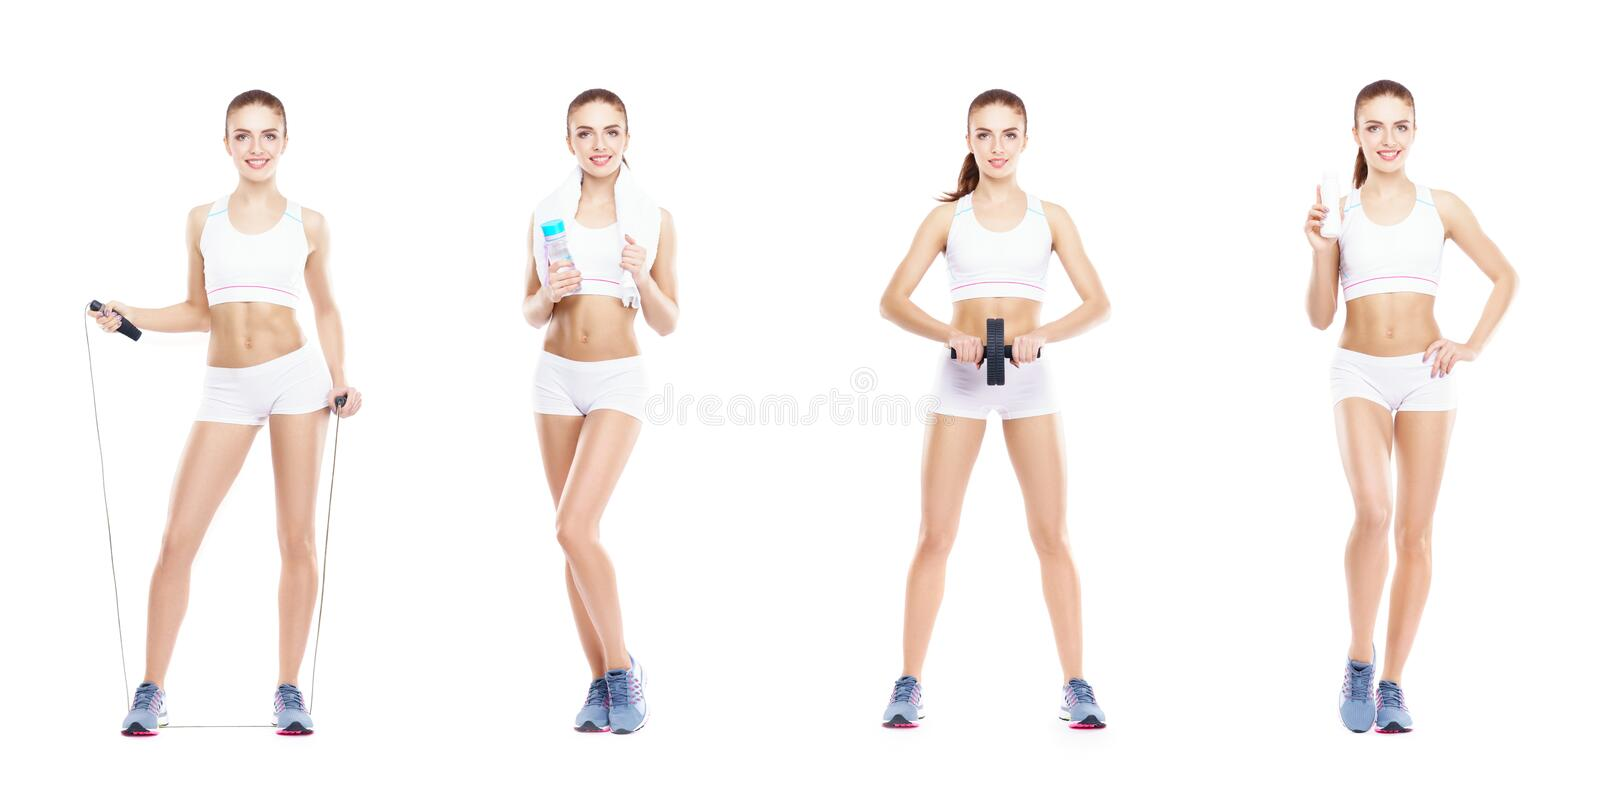 Beautiful and fit woman in a fitness workout. Isolated collage. Sport, nutrition, health and weight loss concept. stock photo